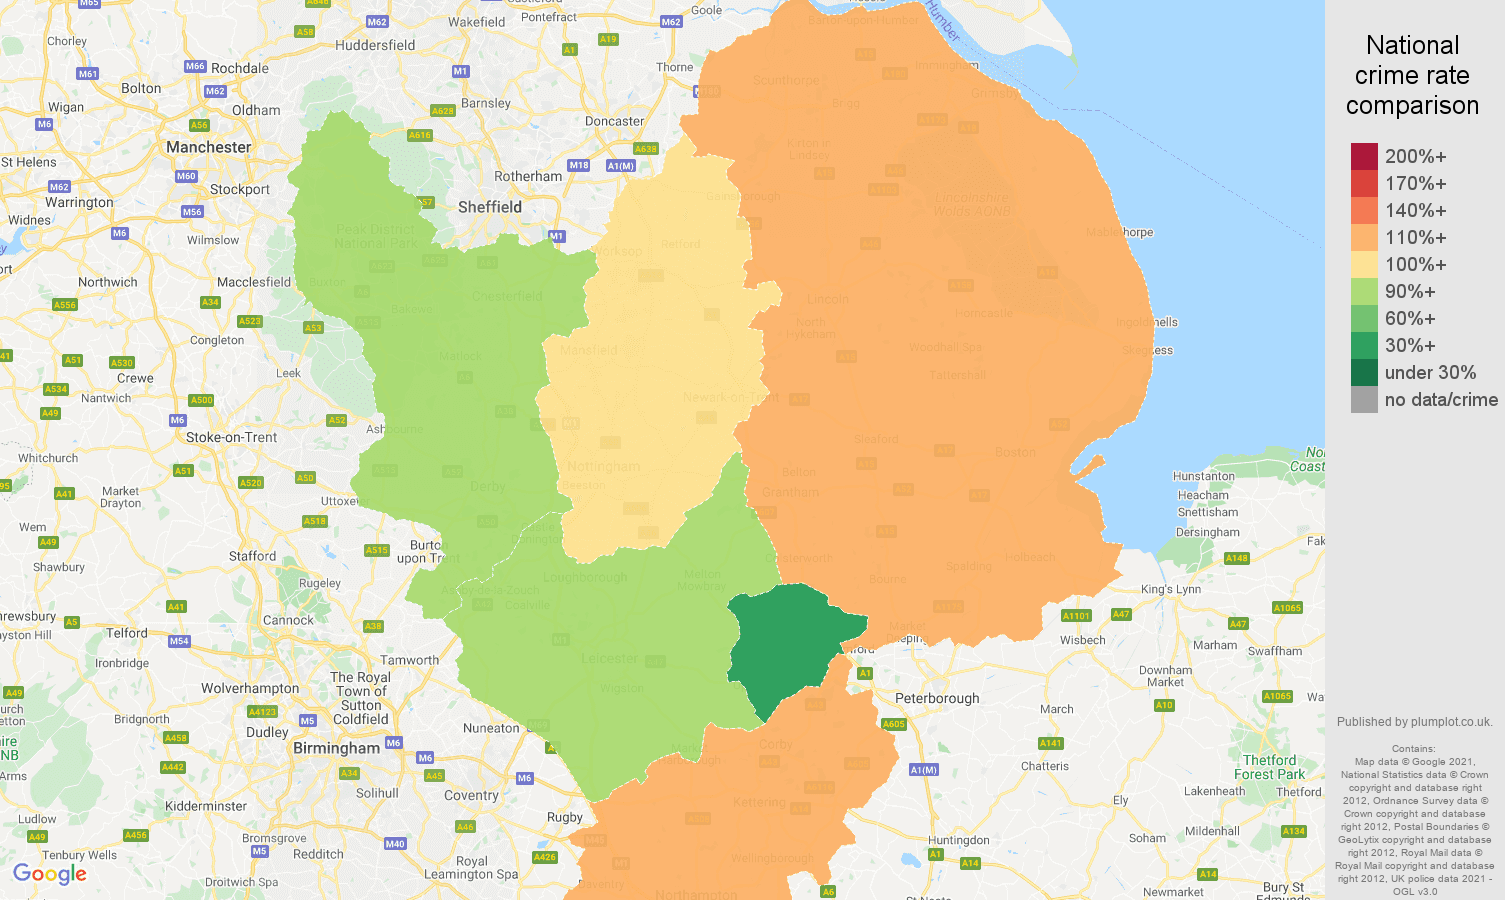 East Midlands burglary crime rate comparison map